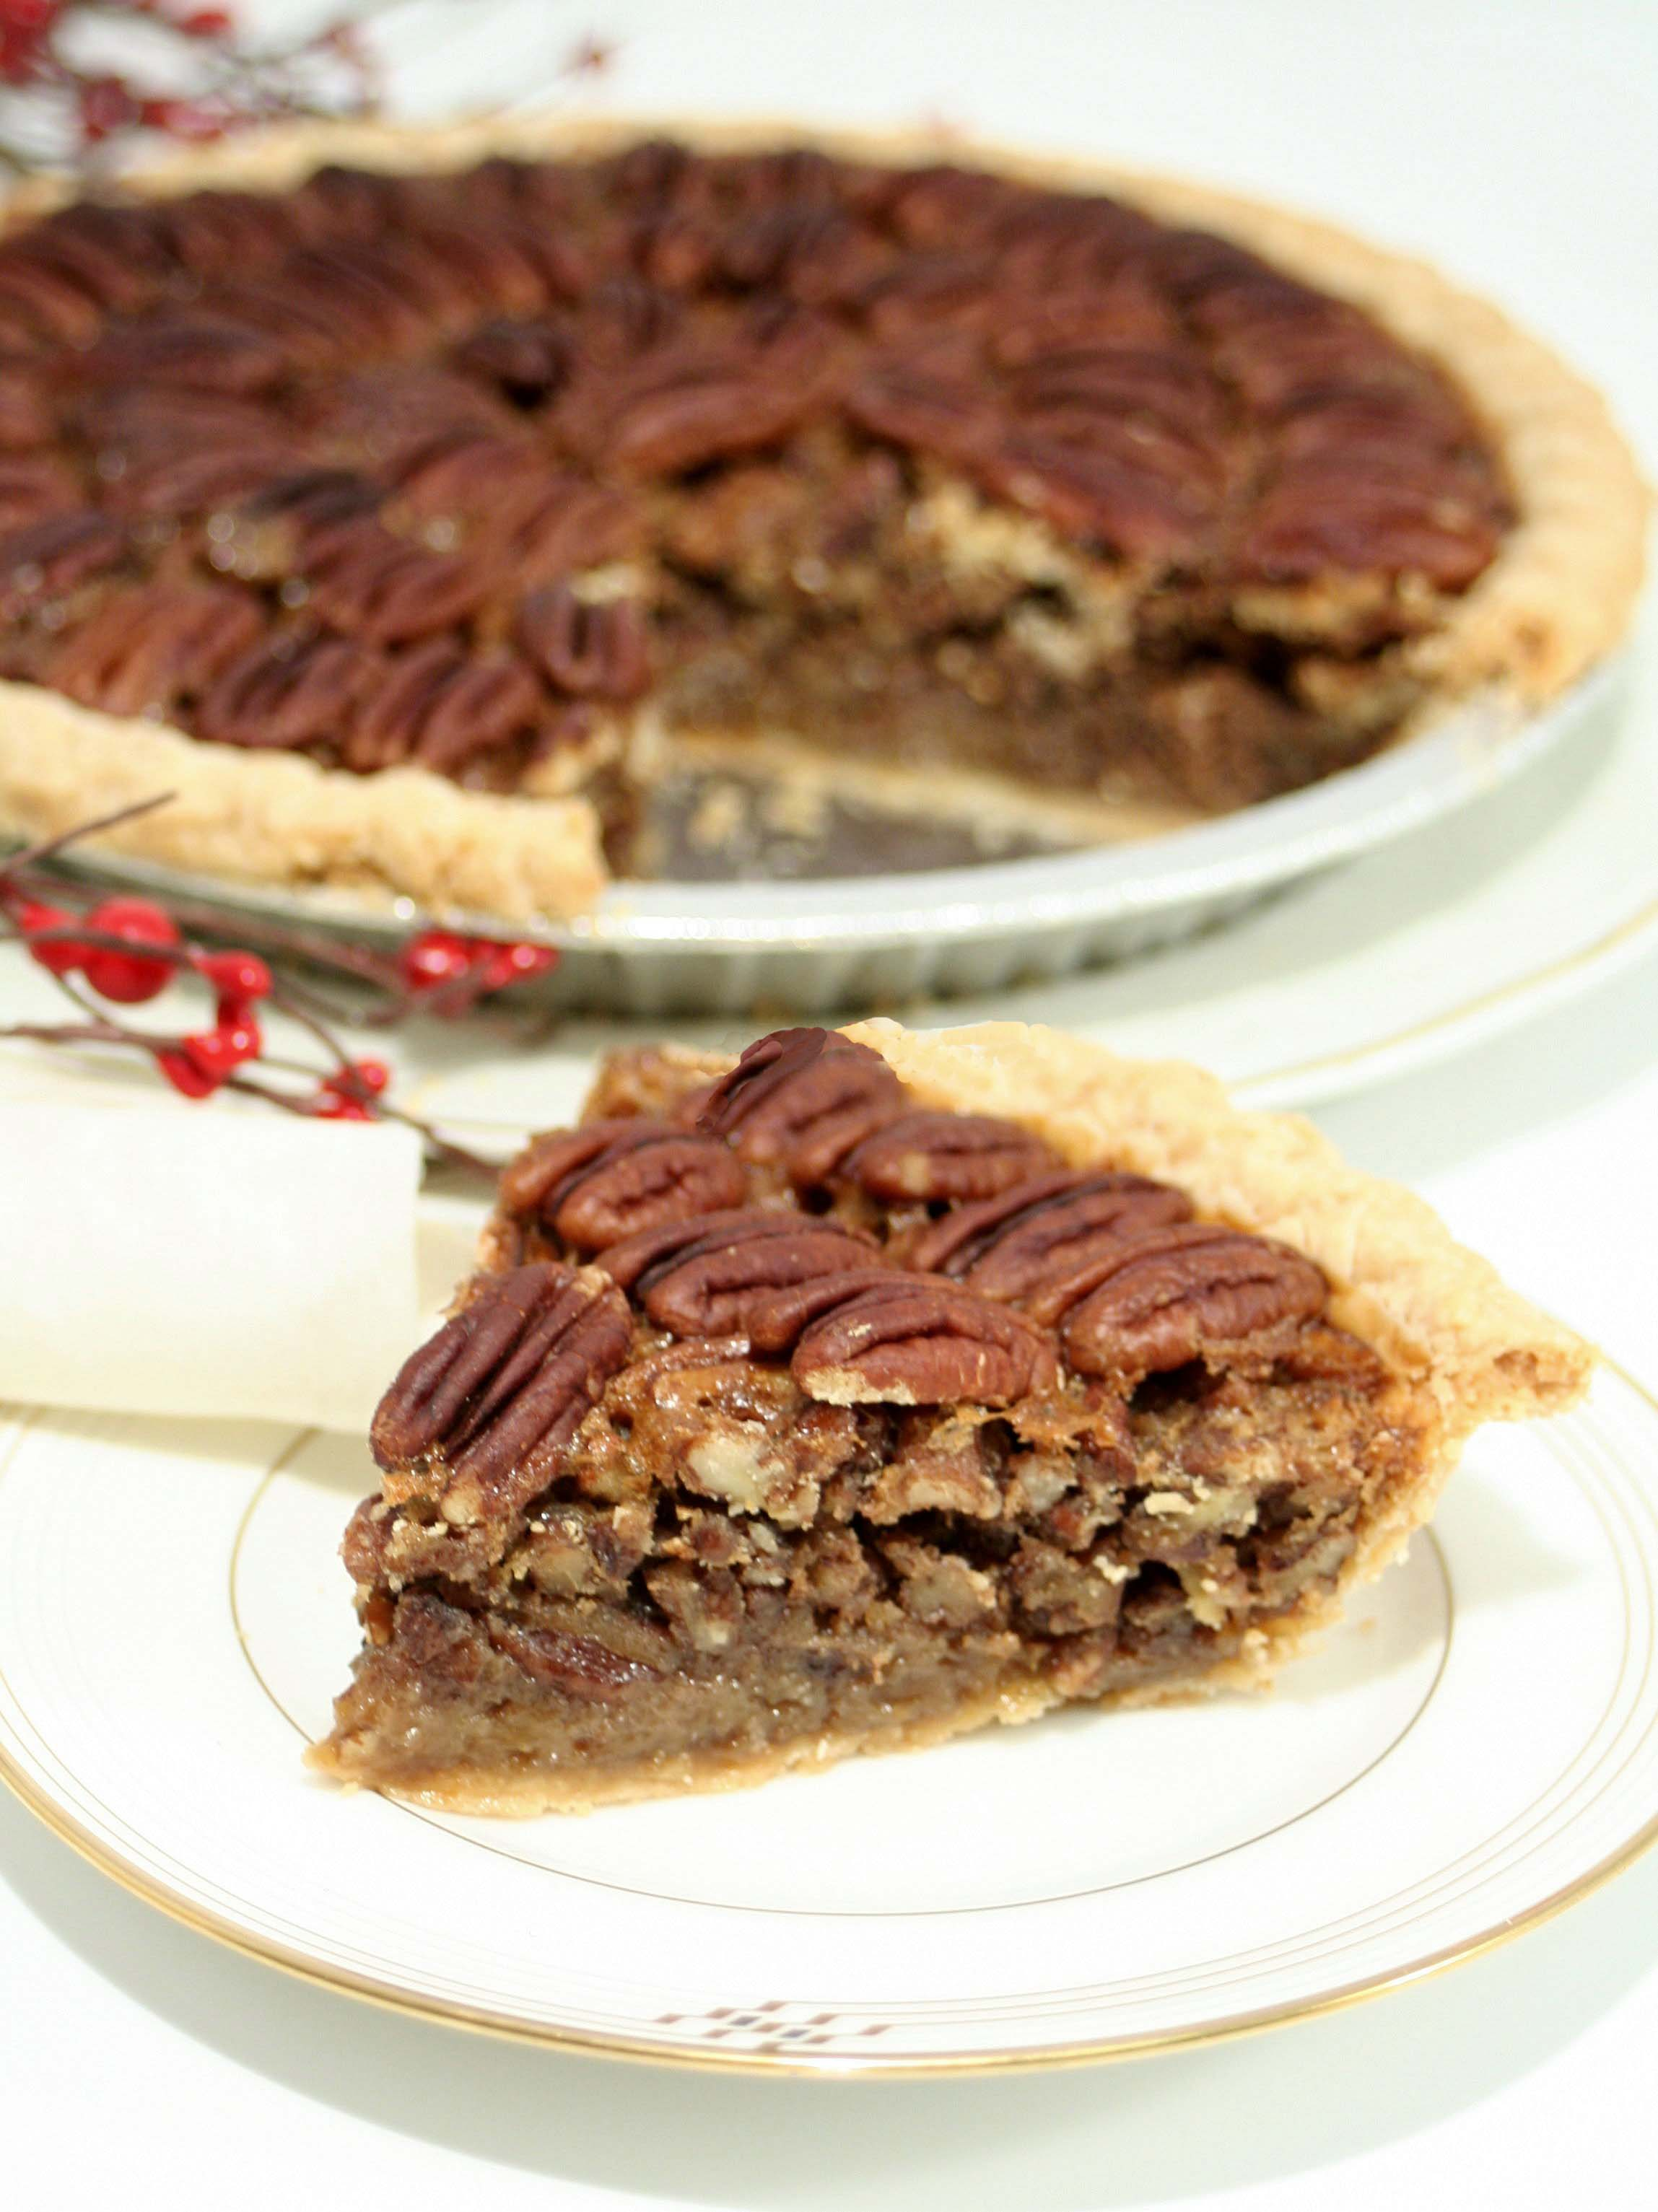 Aunt Bonnie's Pecan Pie: Thanksgiving Pie Recipes: 10 Yummy Alternatives To Pumpkin Pie